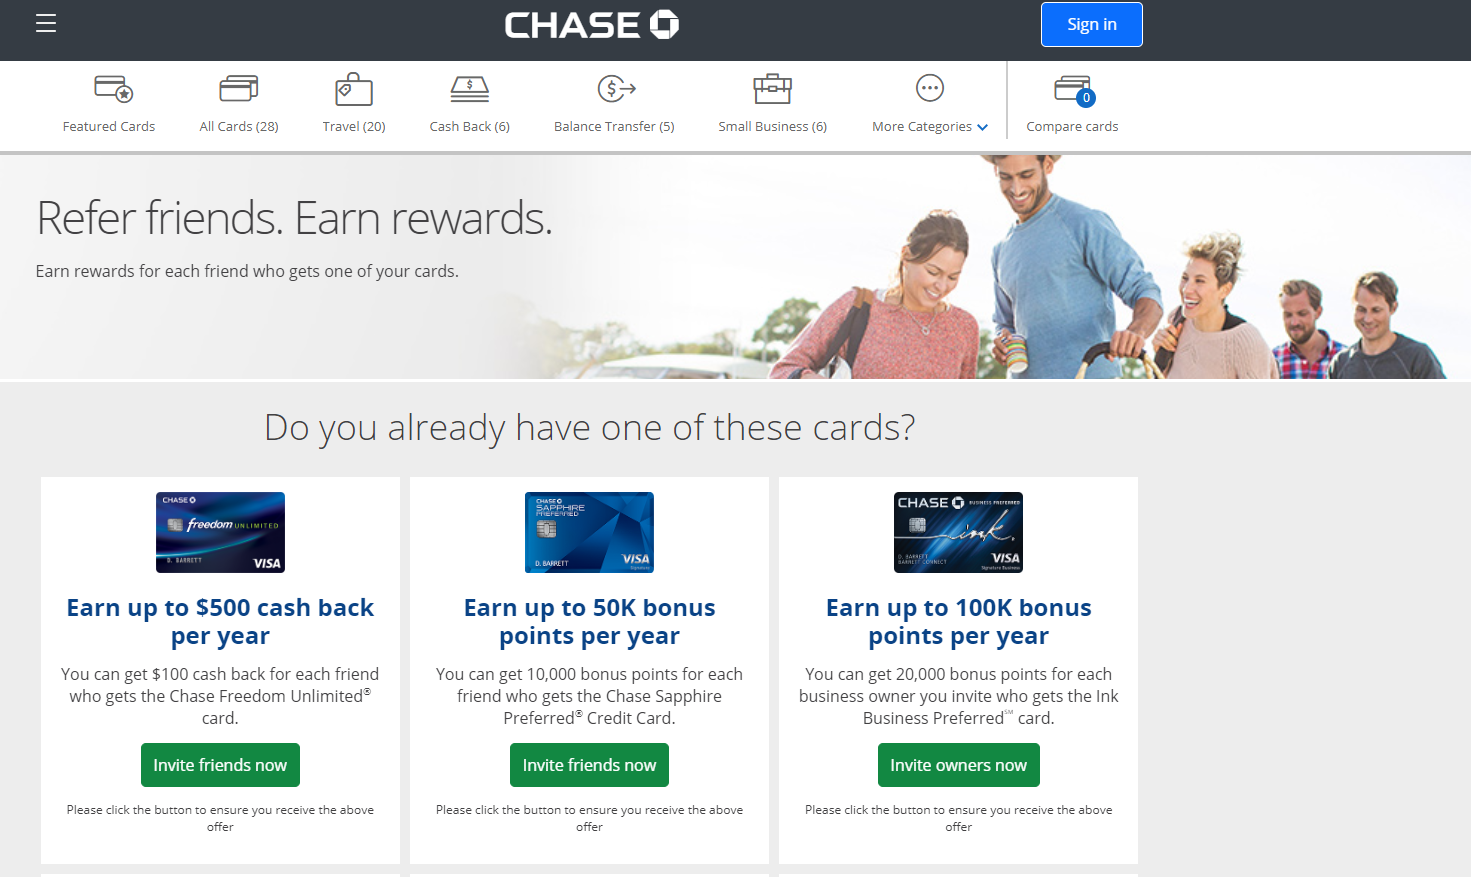 The Chase refer-a-friend program offers bonuses for several credit cards.